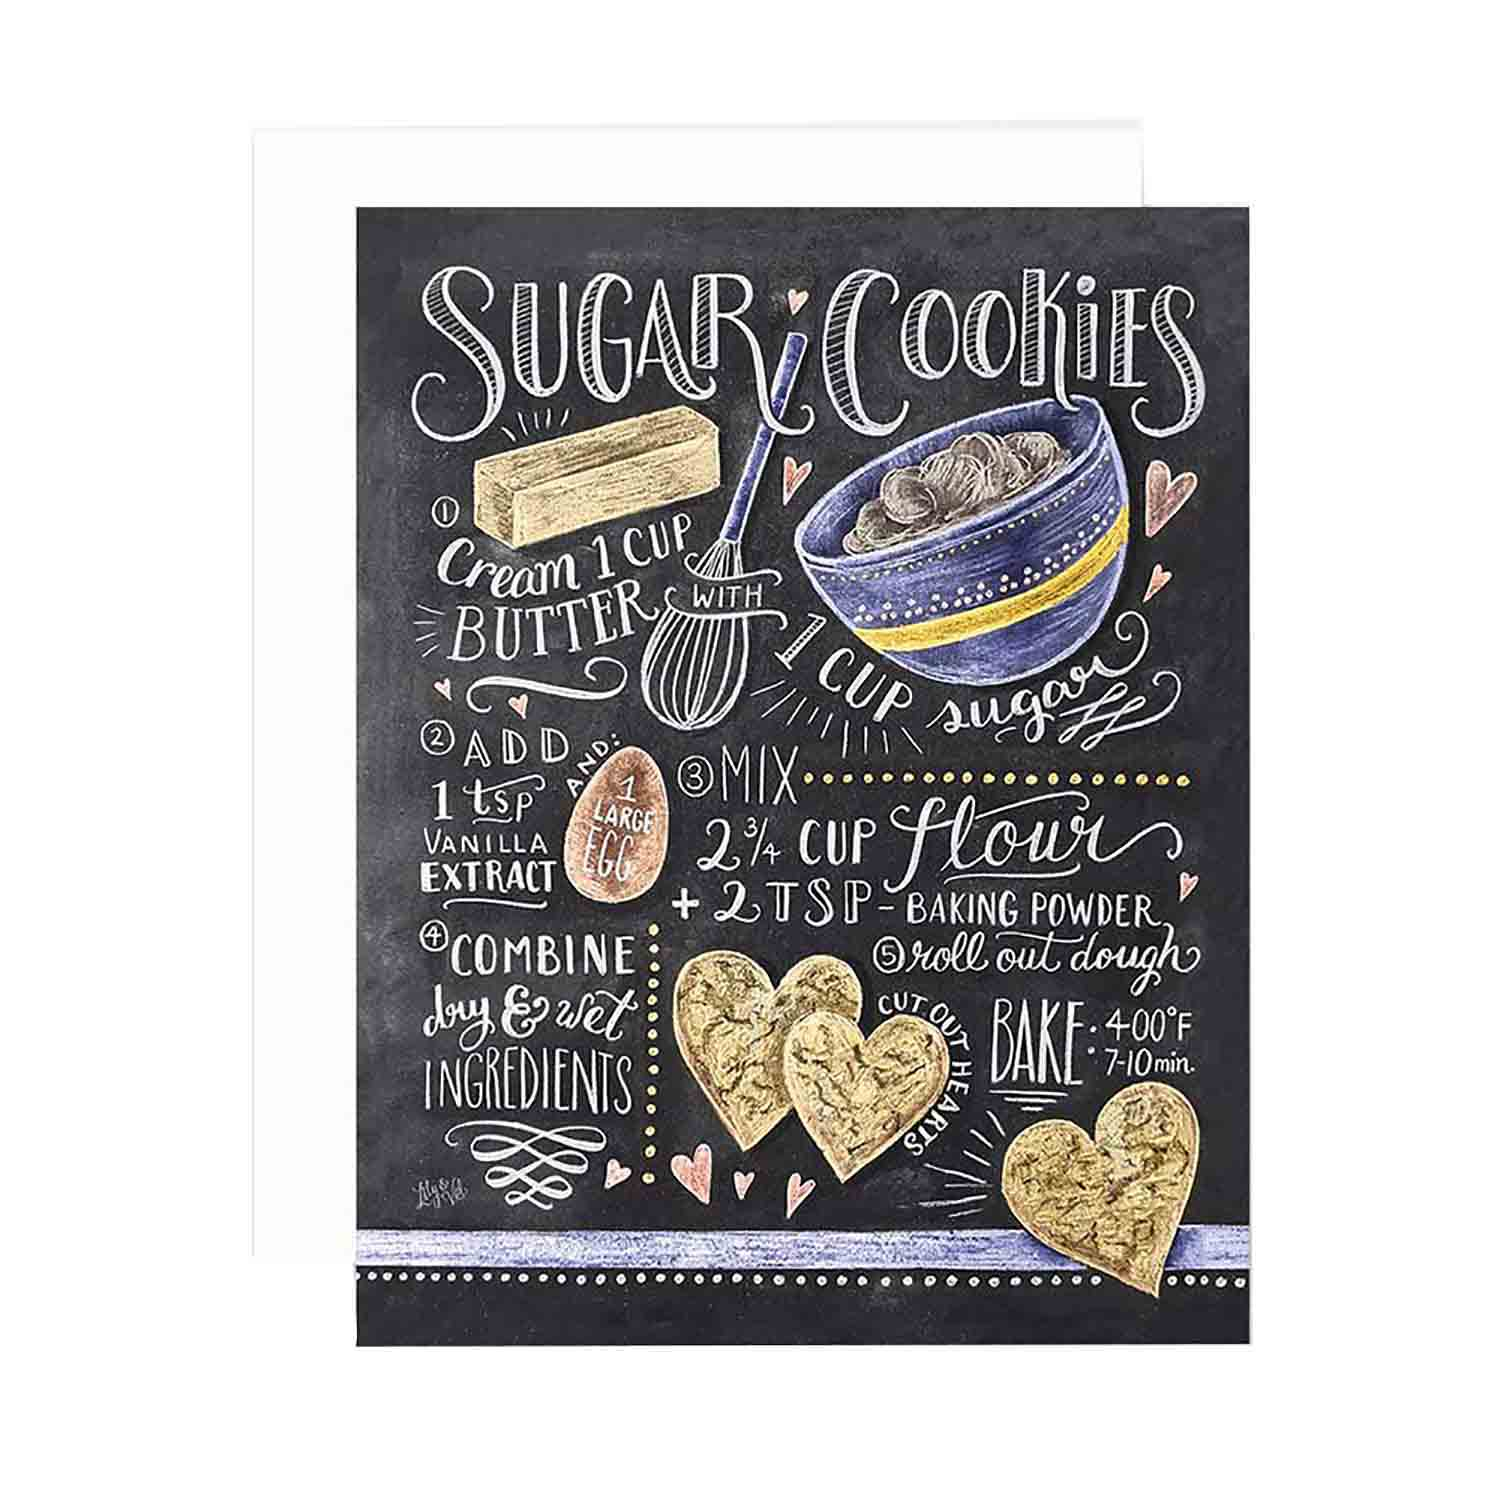 Sugar Cookie Recipe - Notecards